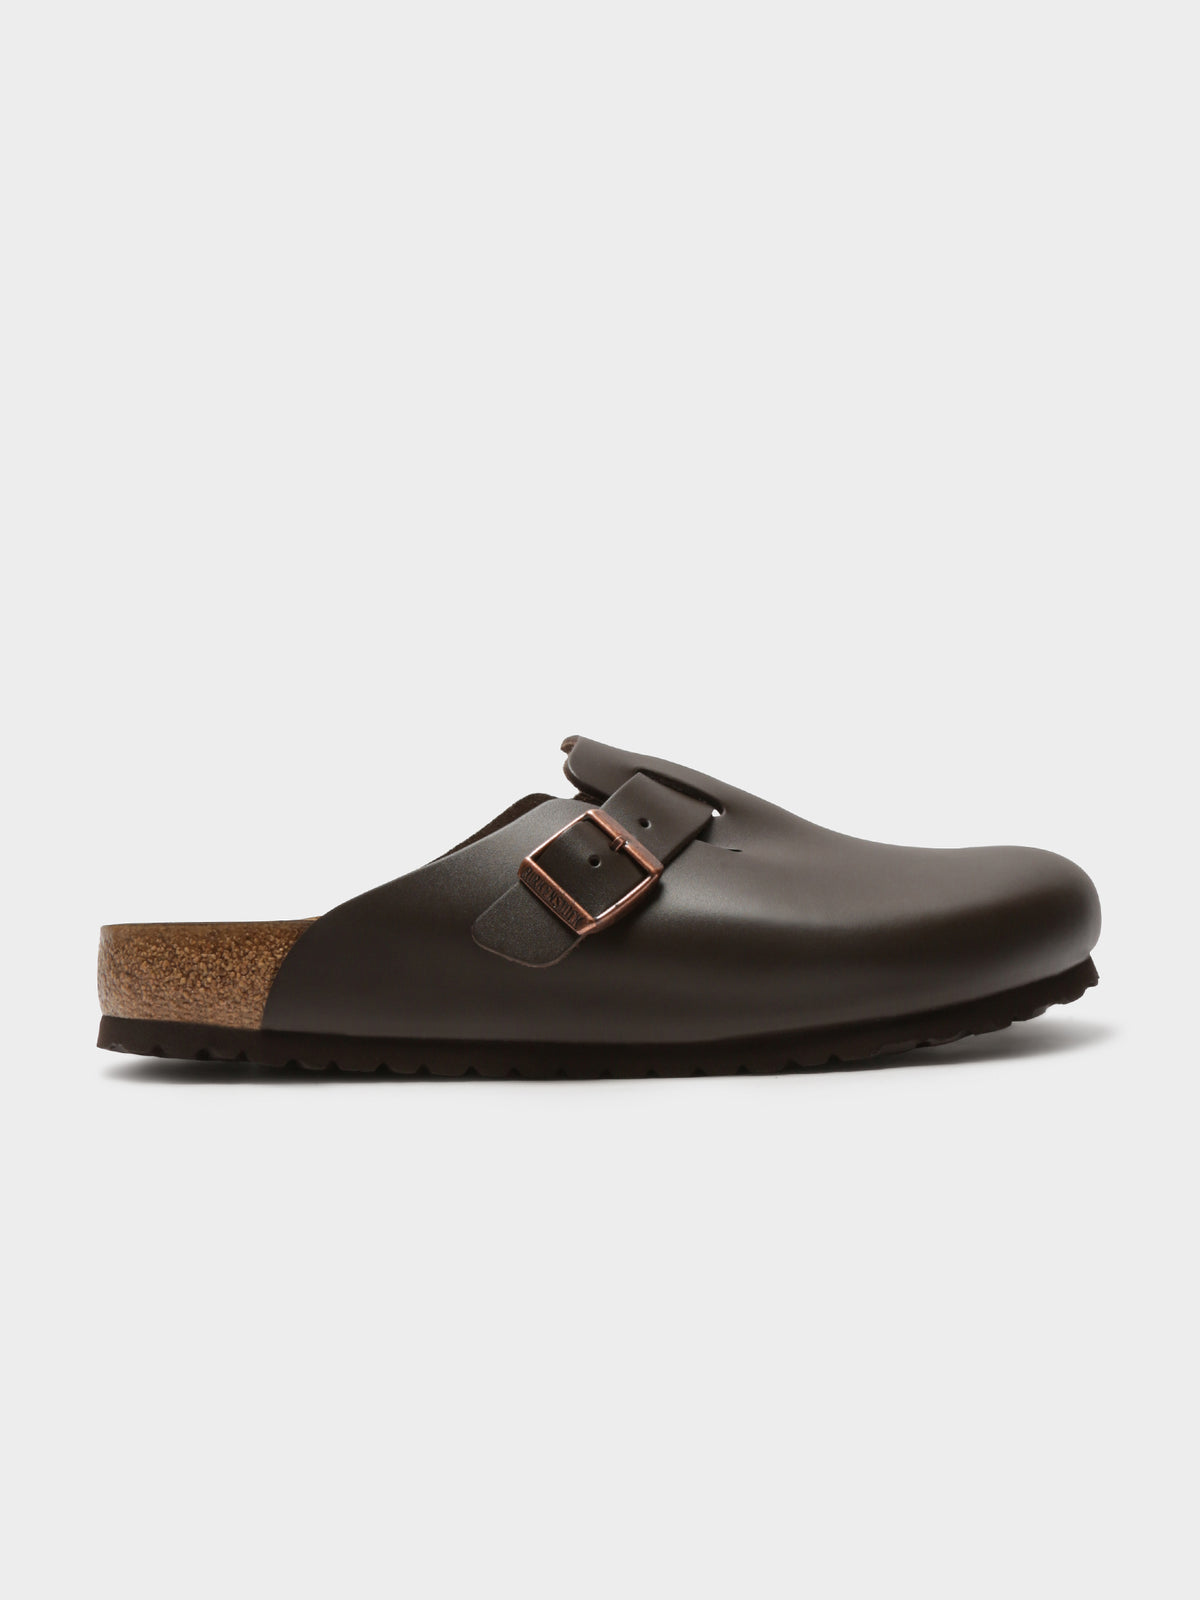 Unisex Boston Slip-Ons in Dark Brown